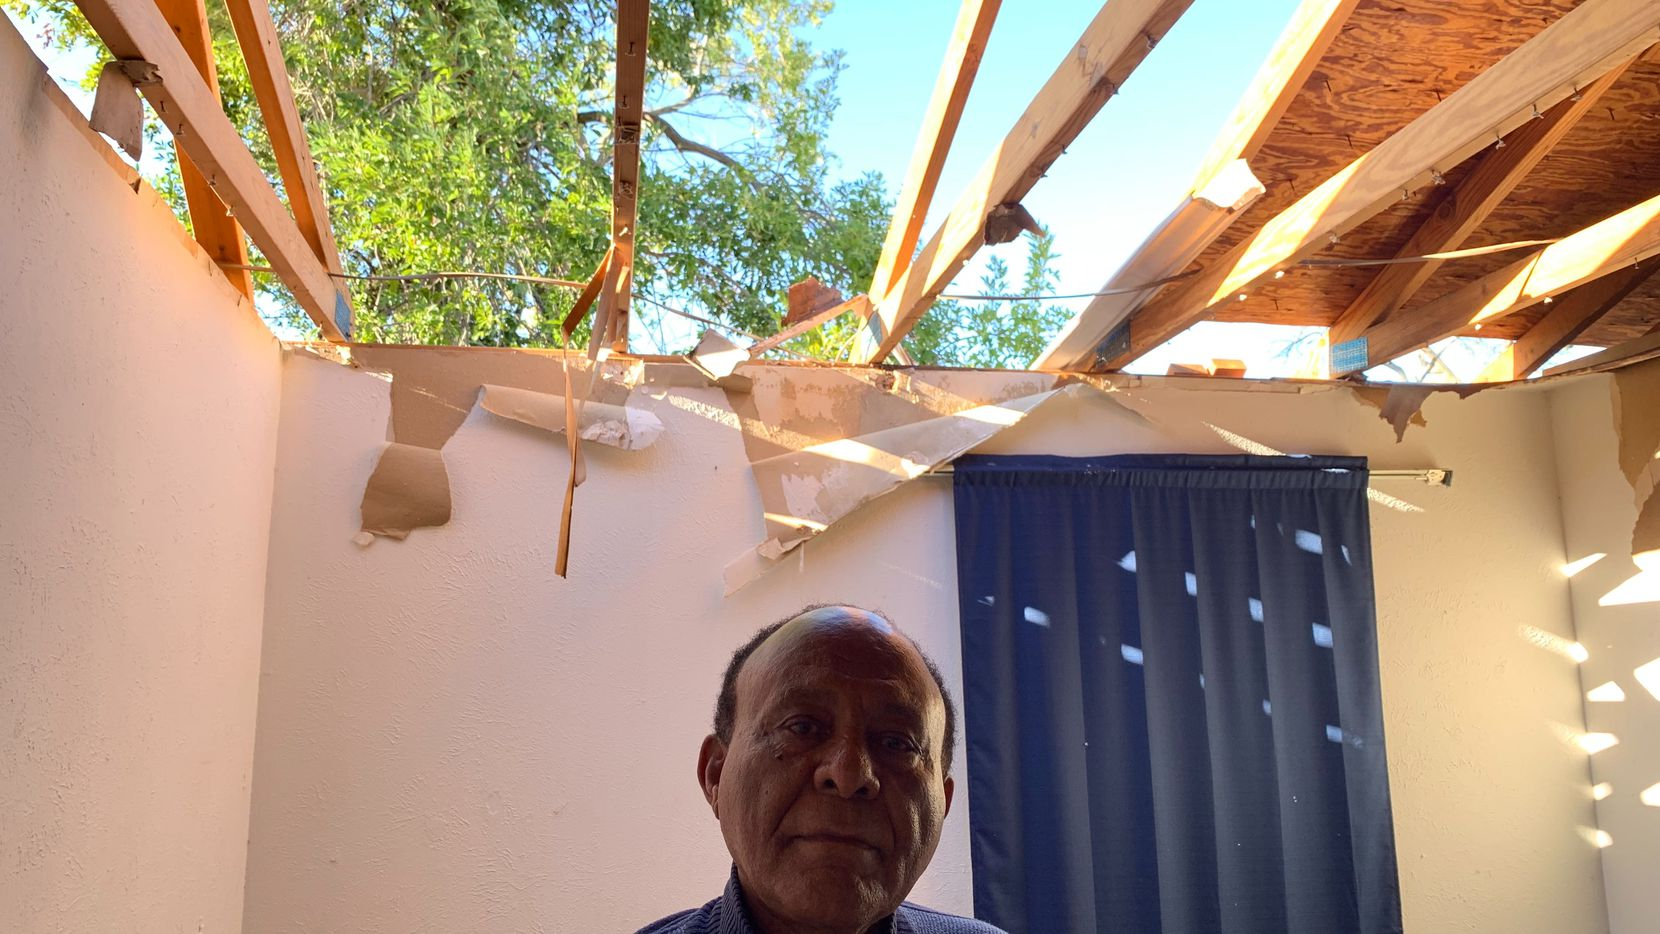 Gizaw Gedlu, 71, stands in his Richardson home that was destroyed by a tornado Sunday night.